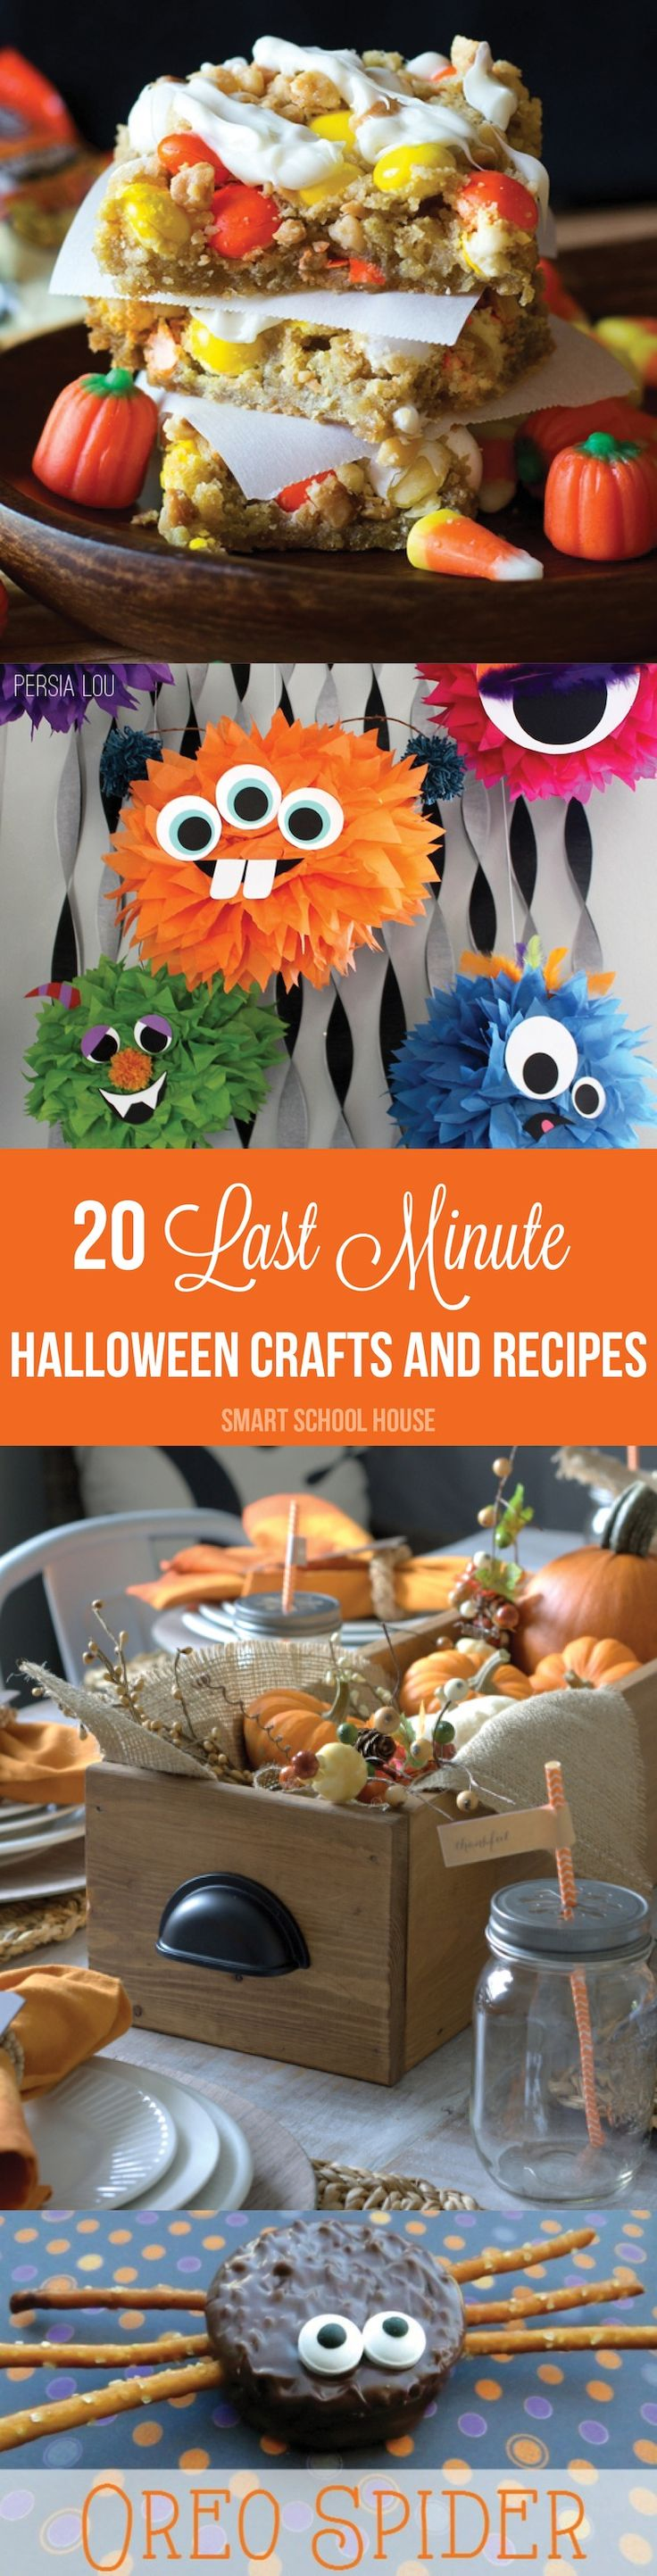 Kids halloween craft kits - 20 Last Minute Halloween Crafts And Recipes